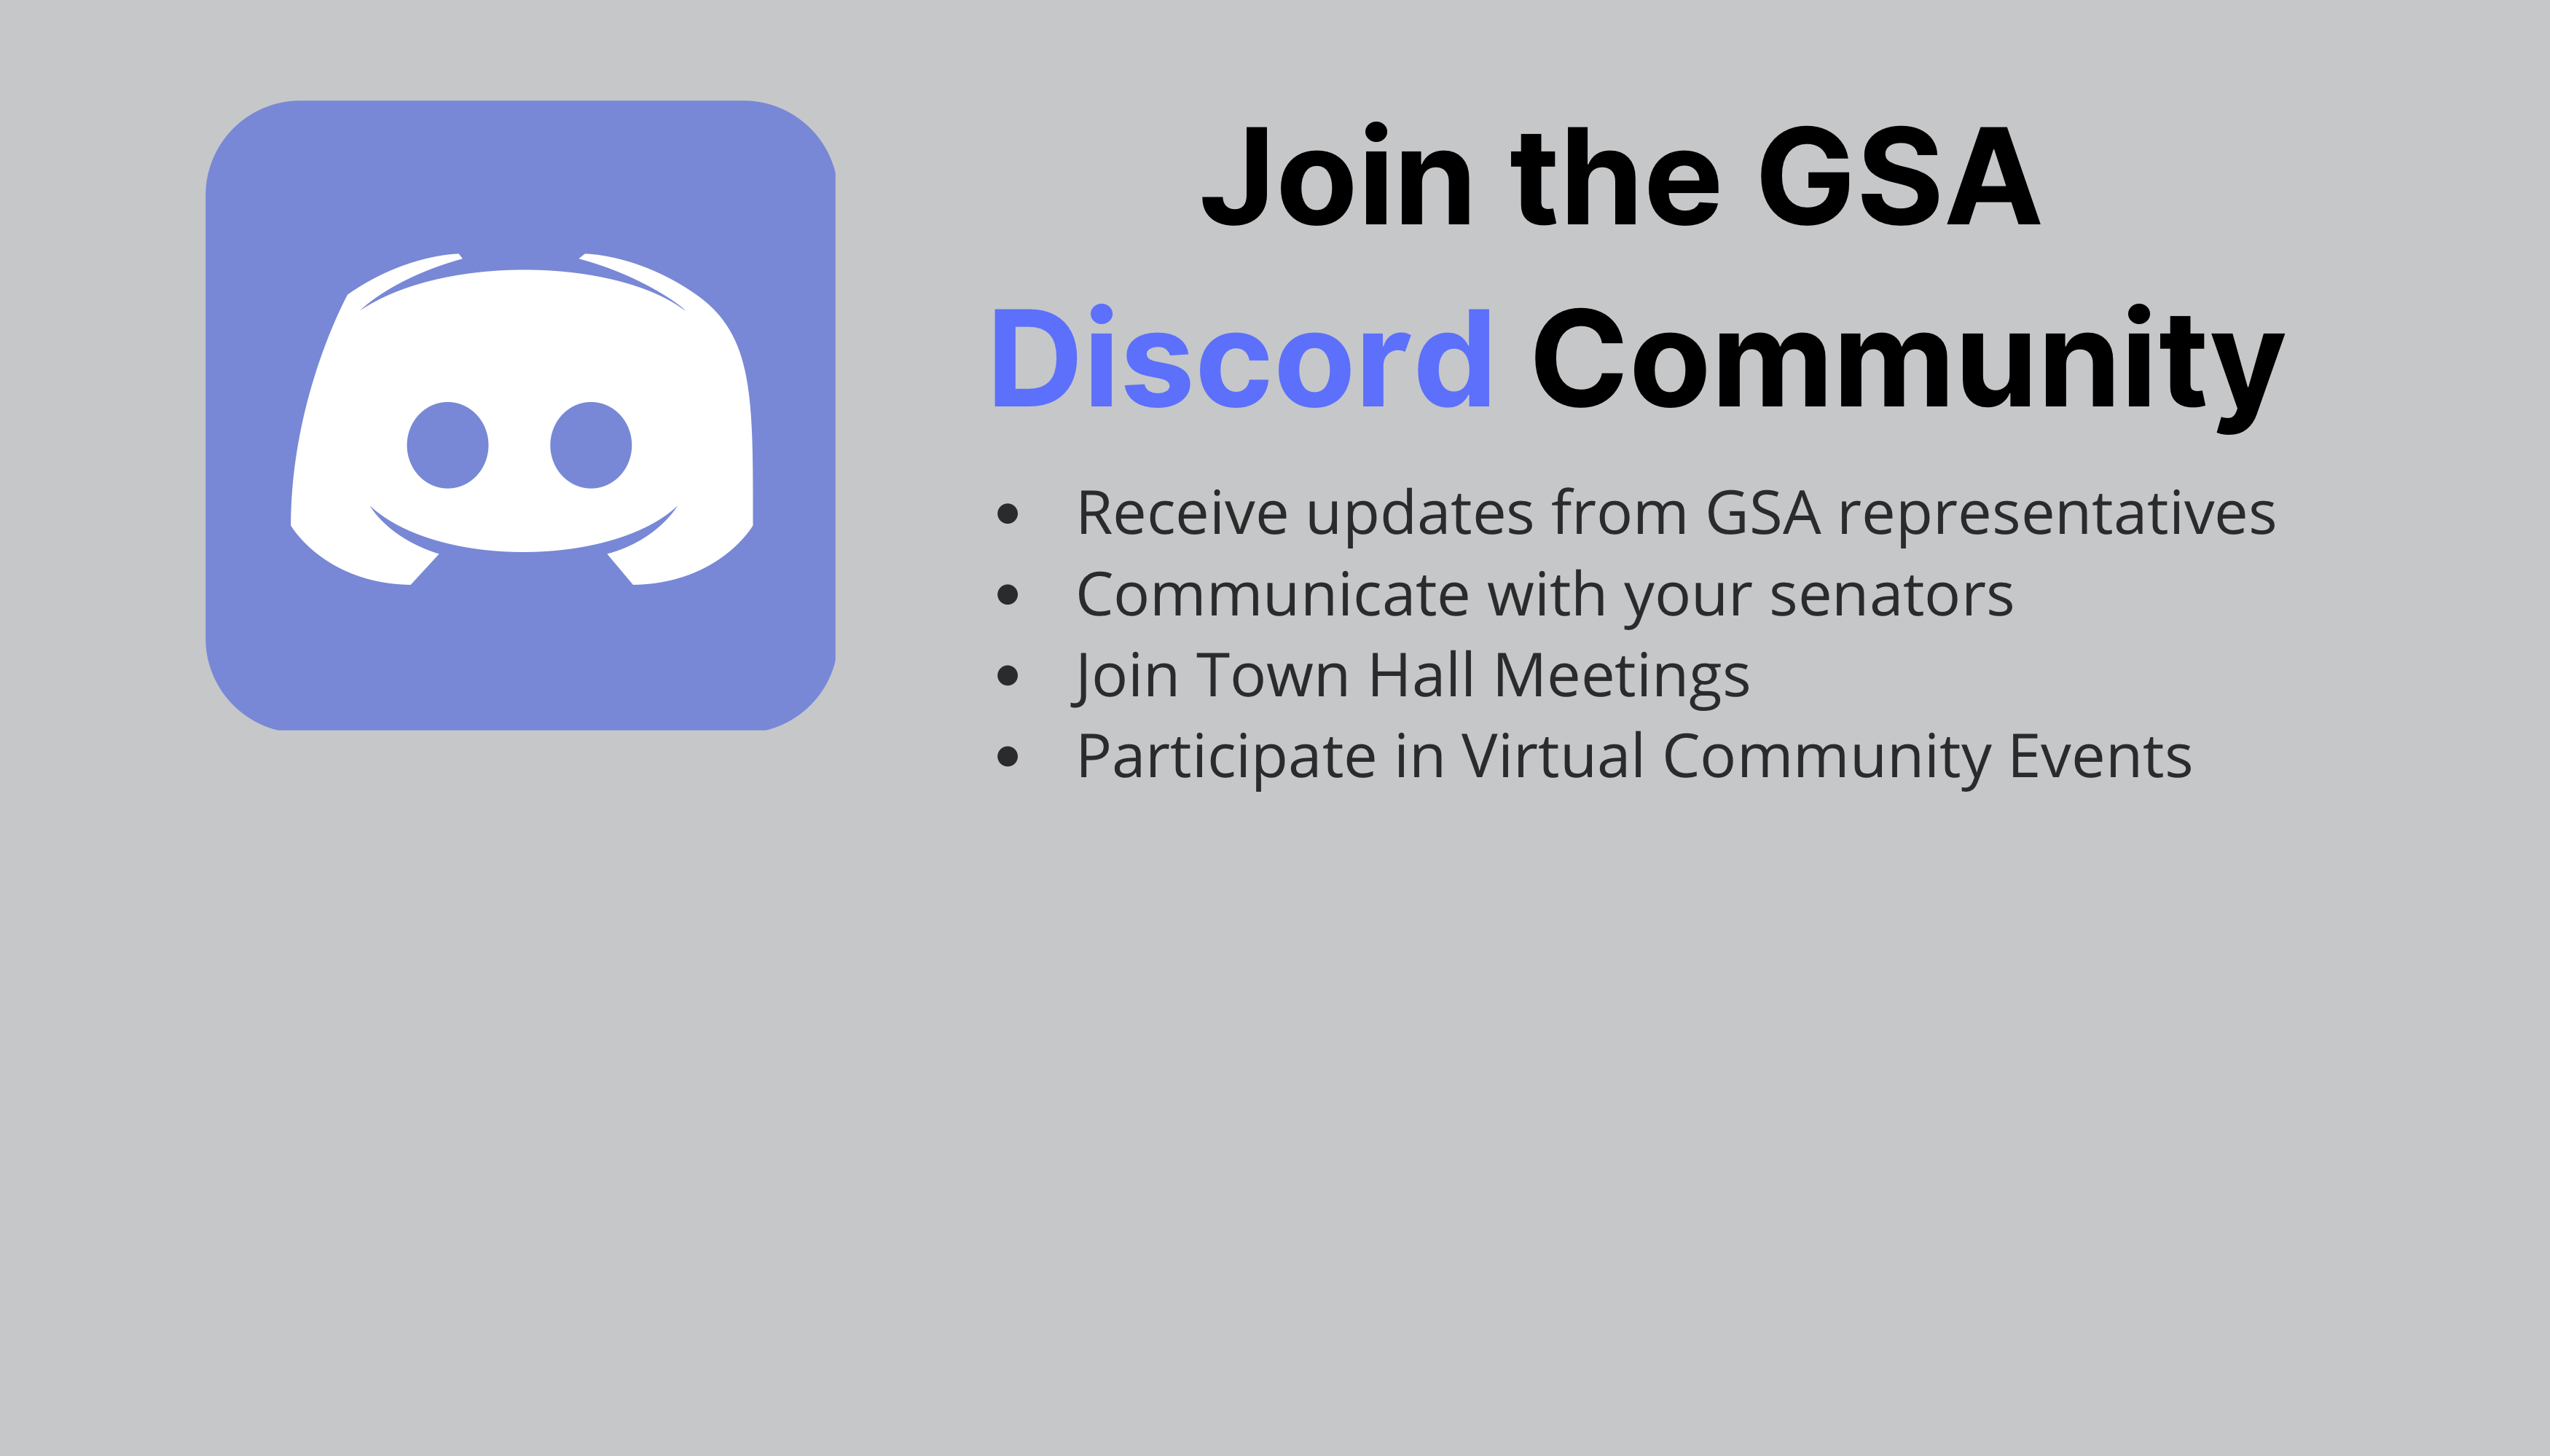 Join the GSA Discord Community